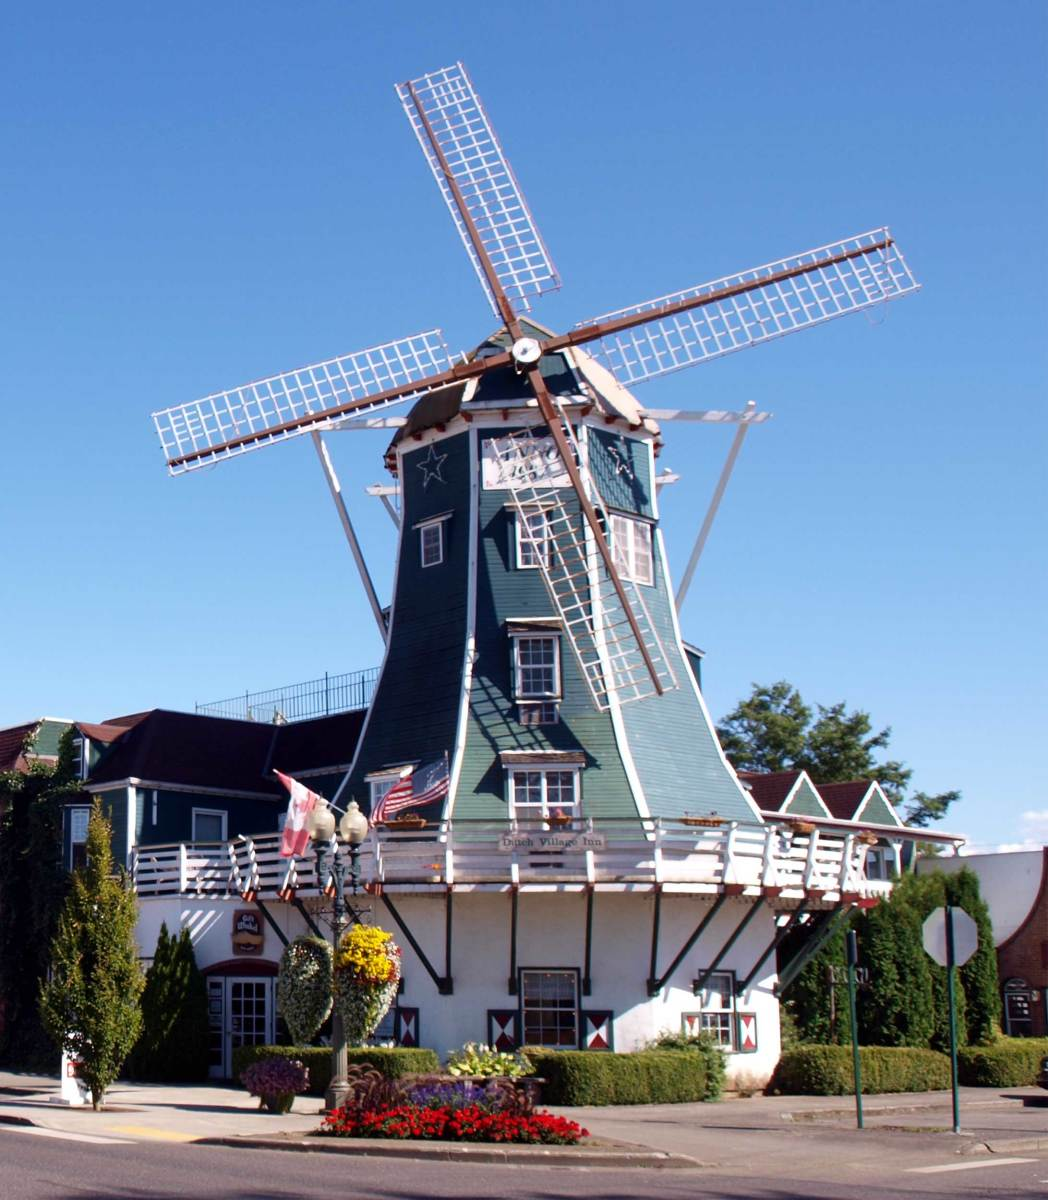 The Lynden Windmill Bed and Breakfast. You can book a room here. It is especially pretty during the Tulip Festival in April.